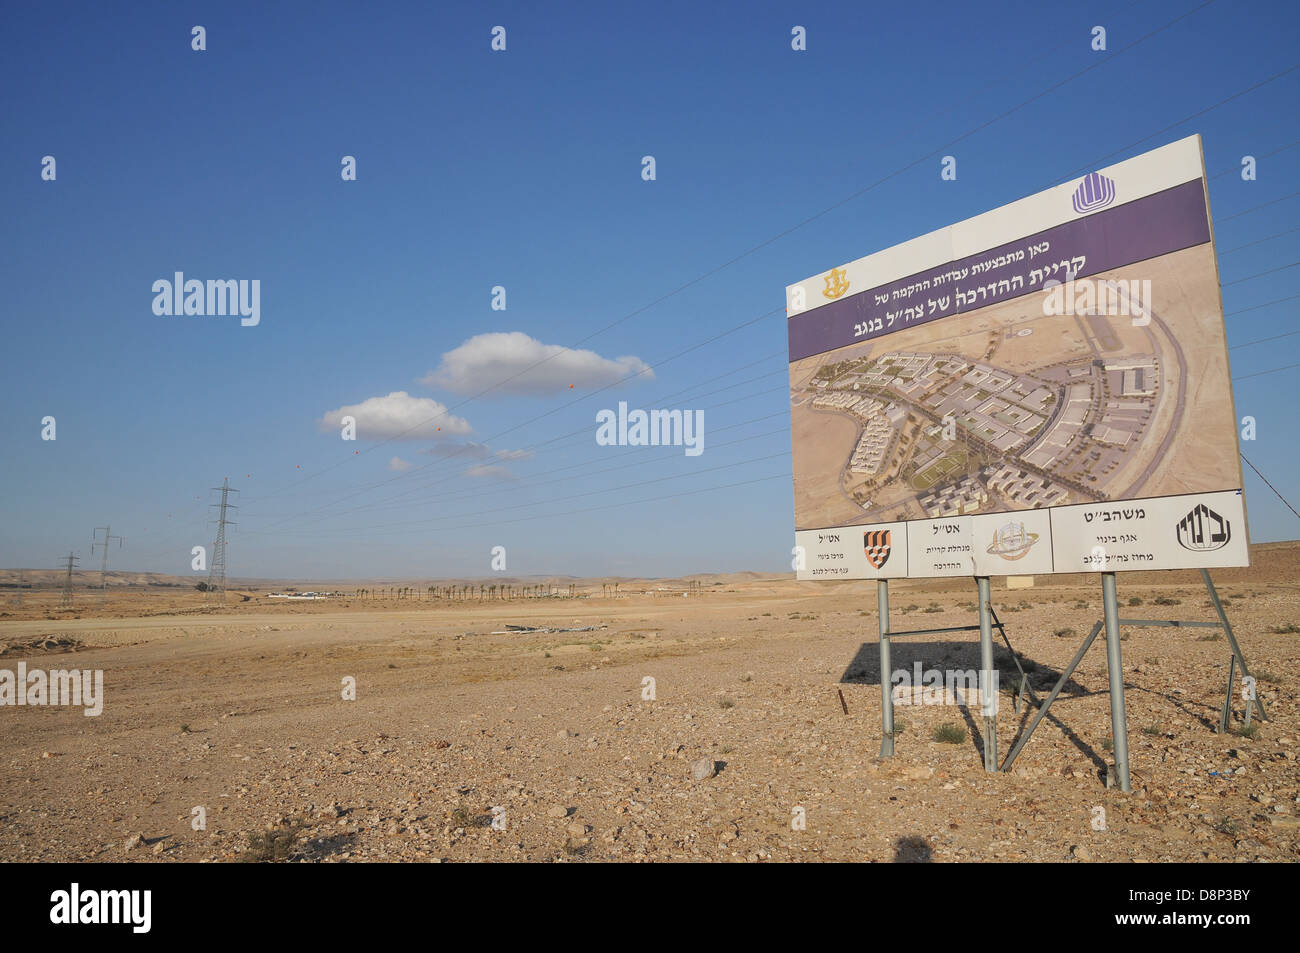 Israel, Negev, the new site of the military training bases (Training Base City) - Stock Image